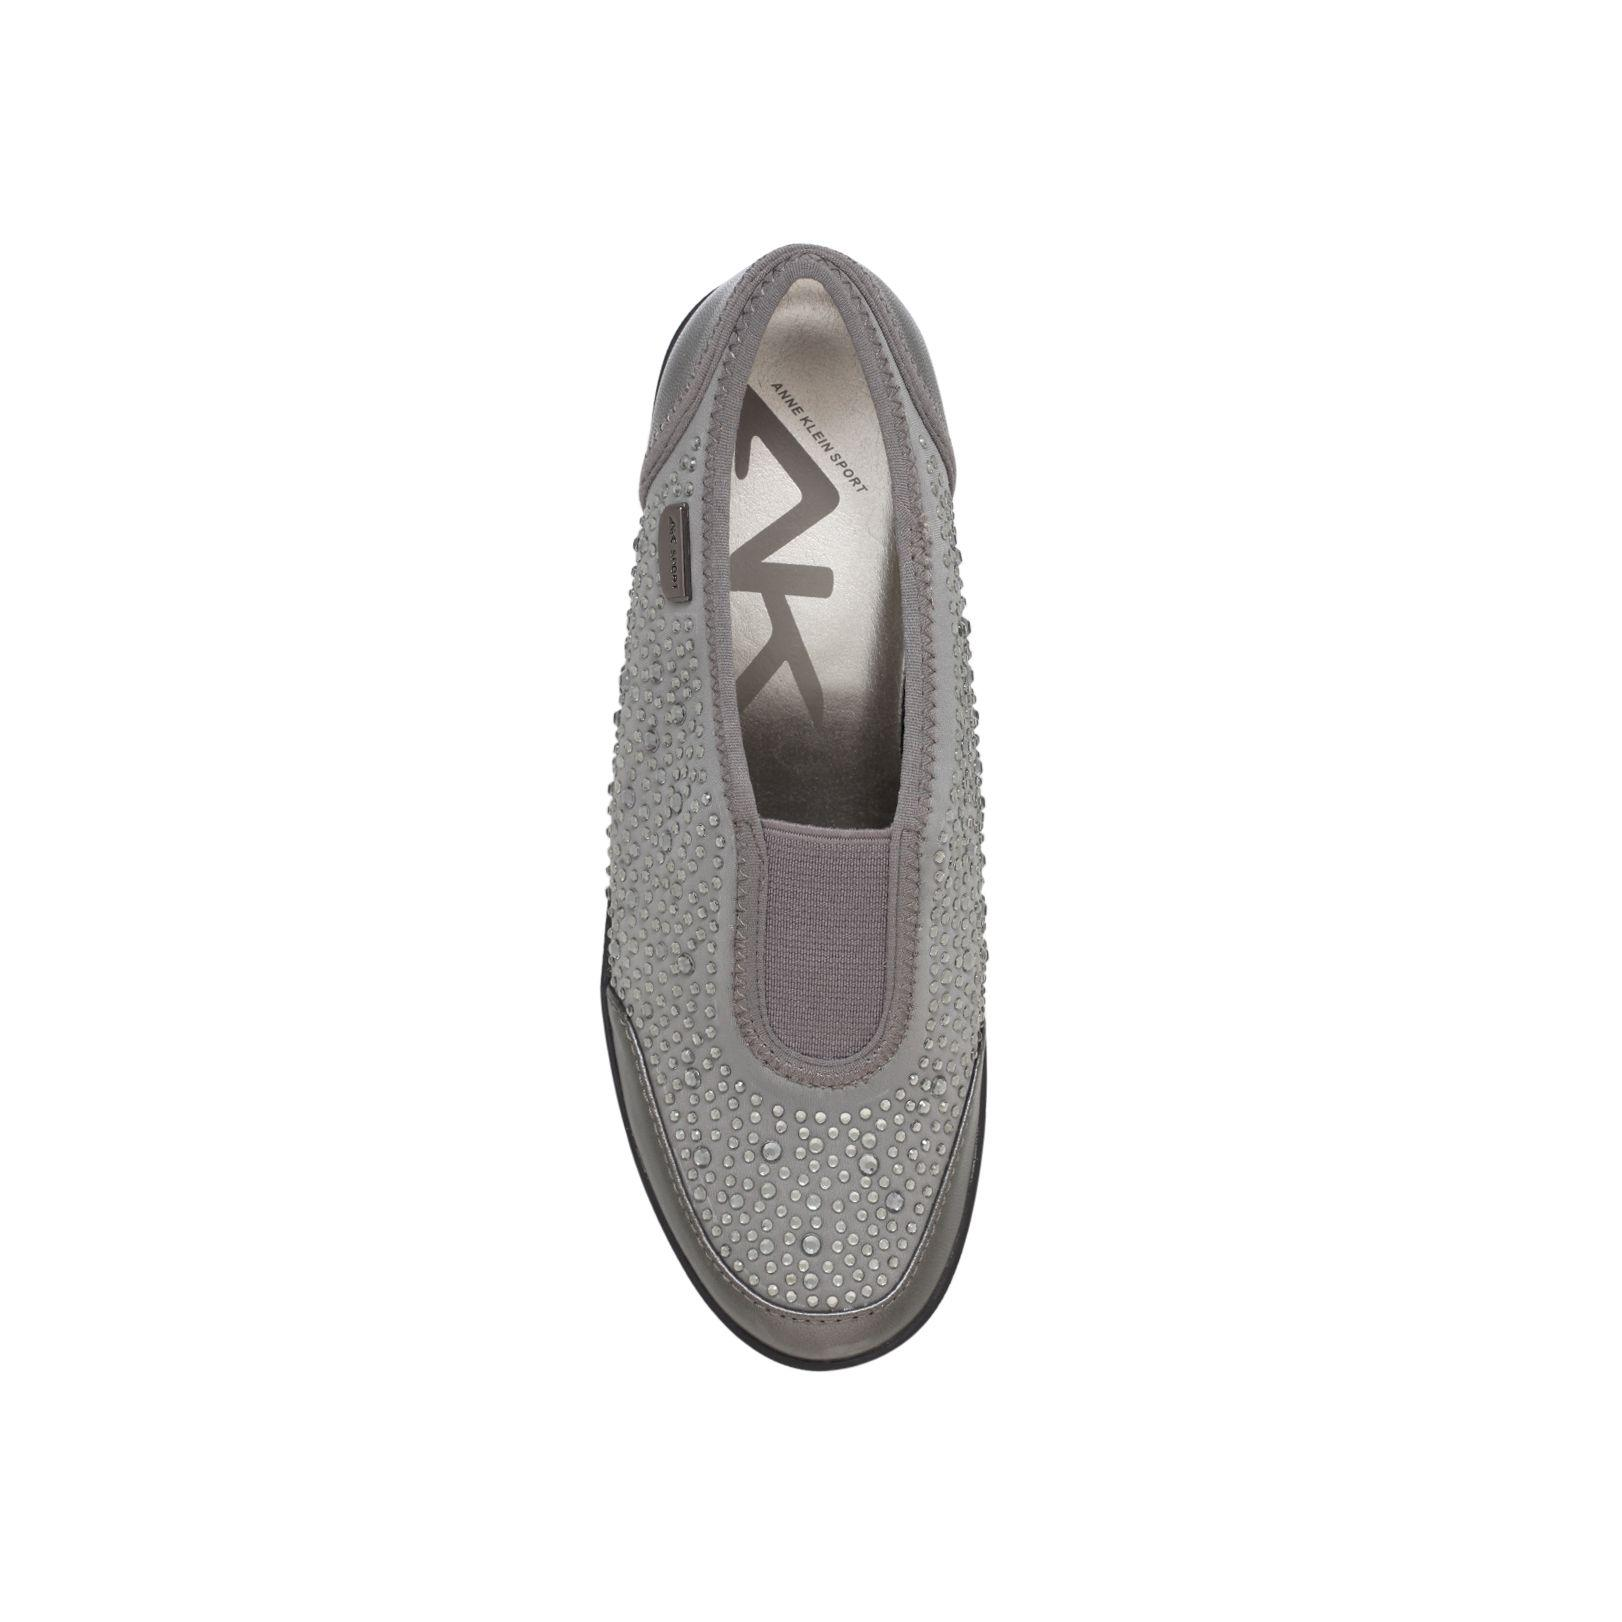 Anne Klein Synthetic Yarmilla Flat Lace Up Sneakers in Light Grey (Black)